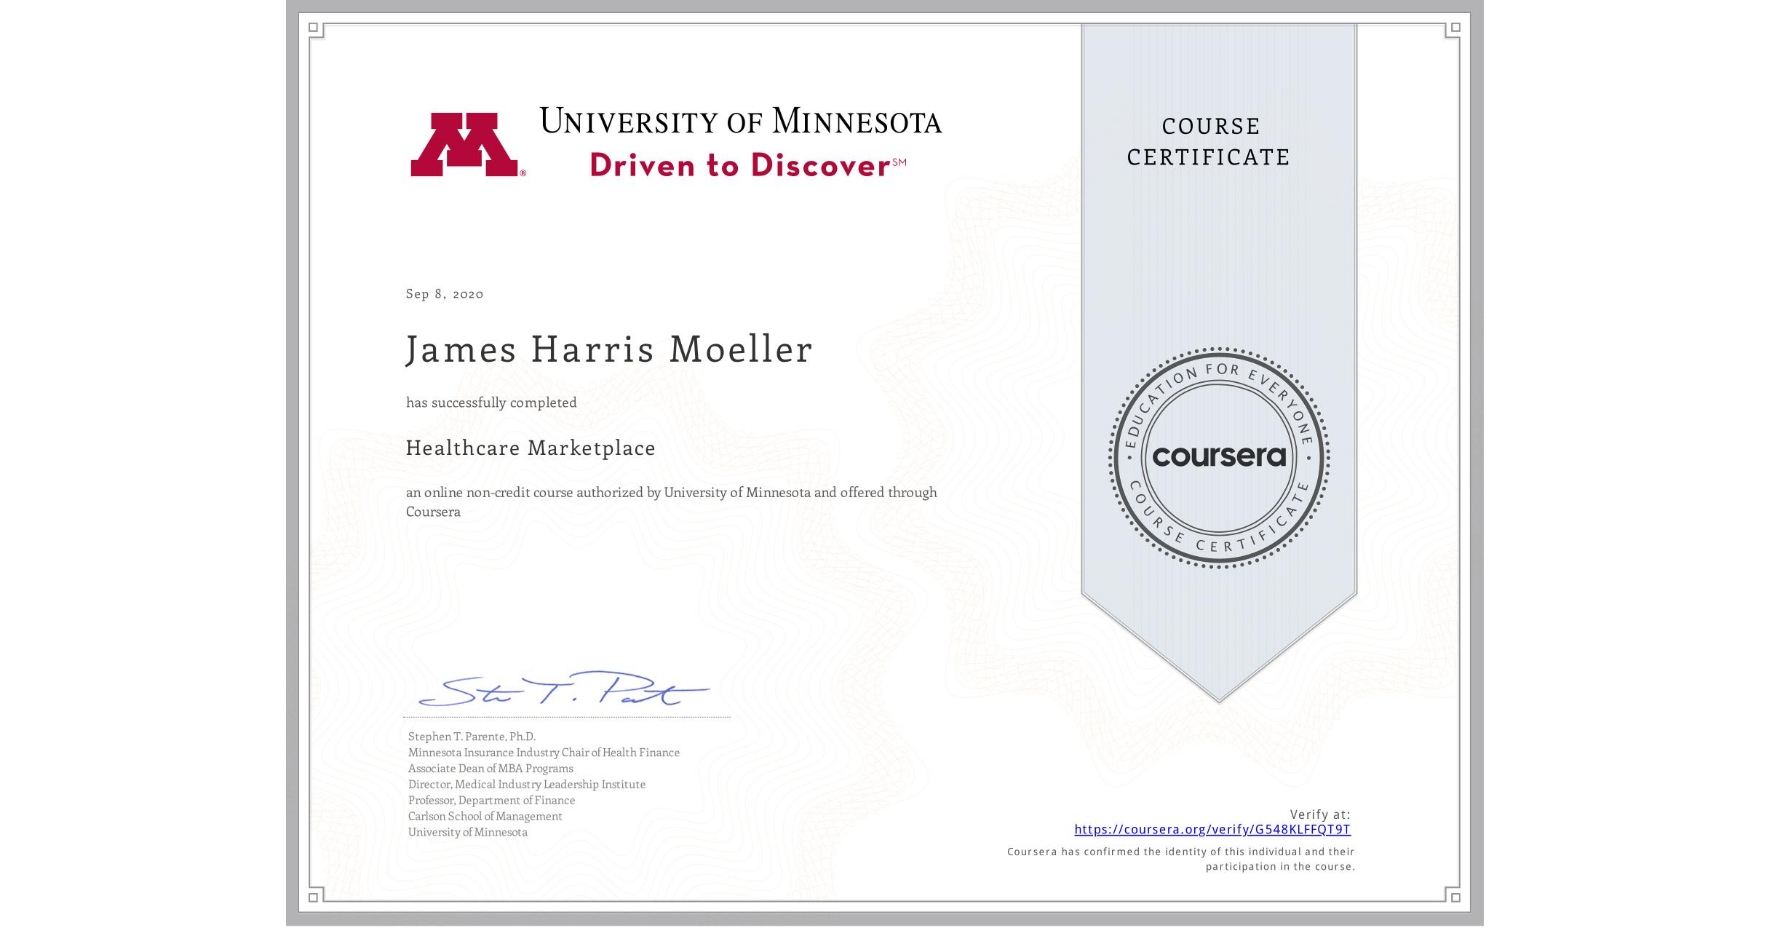 View certificate for James Harris Moeller, Healthcare Marketplace, an online non-credit course authorized by University of Minnesota and offered through Coursera